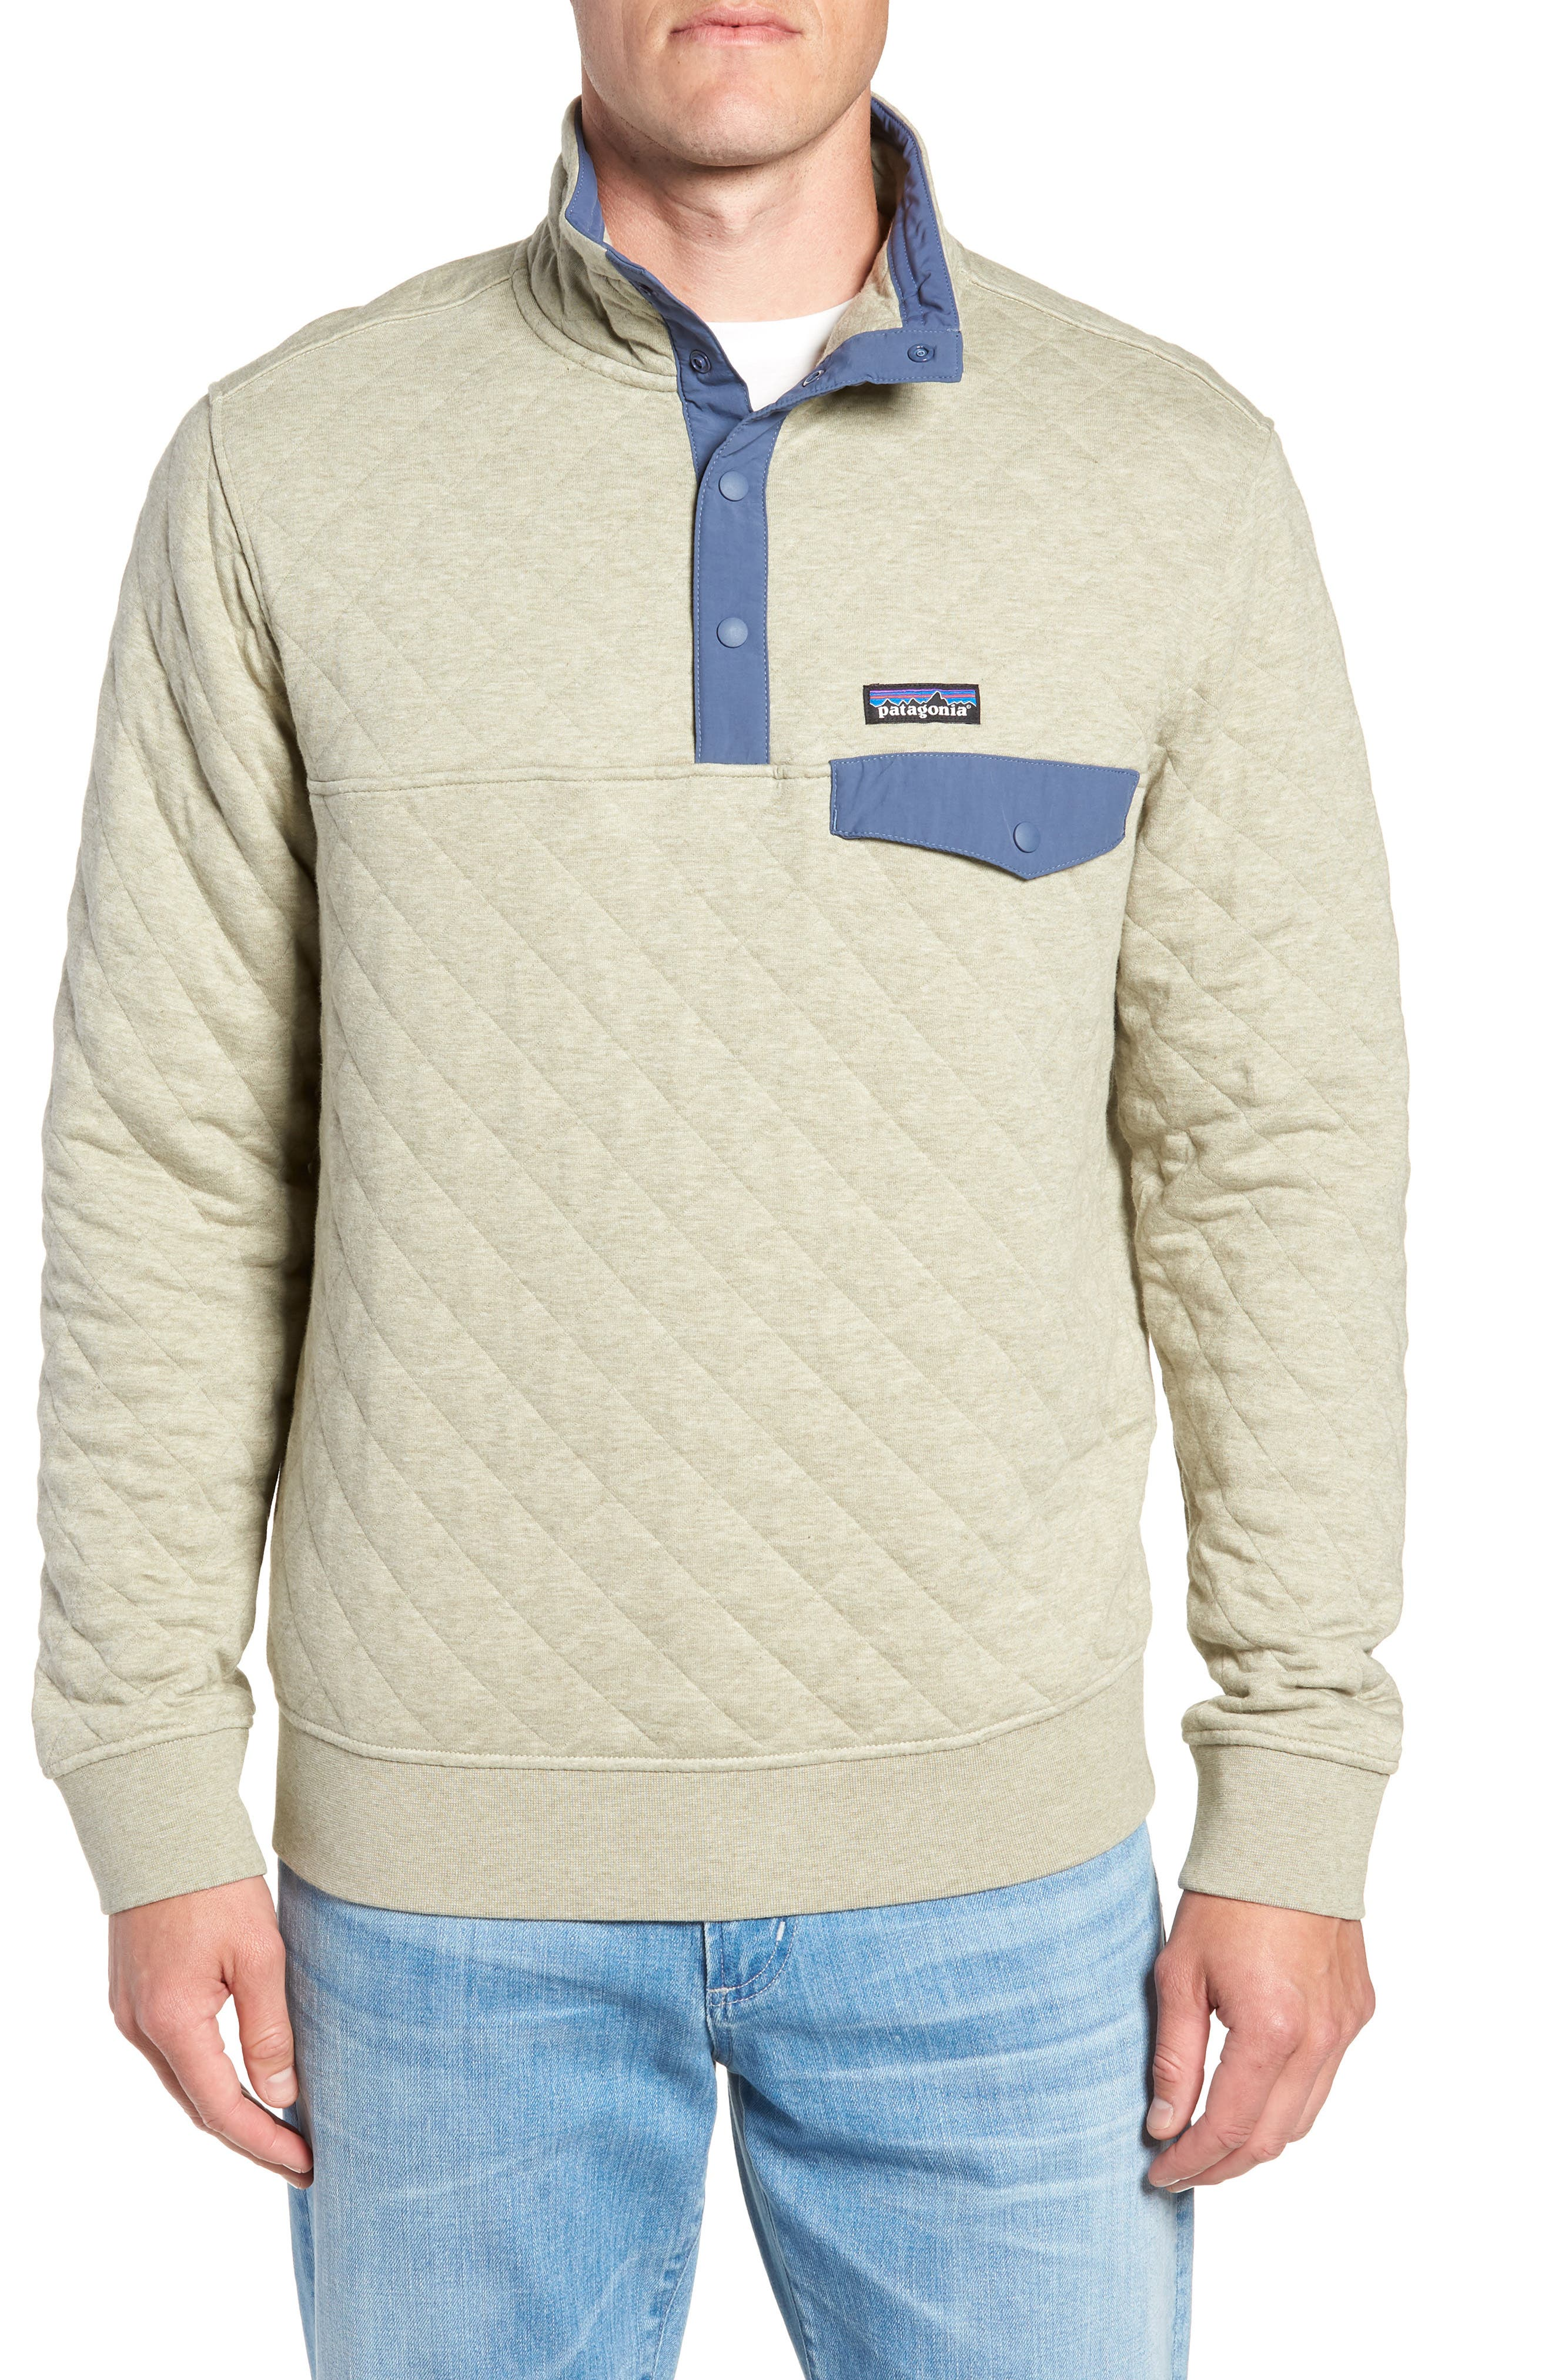 PATAGONIA, Snap-T<sup>®</sup> Quilted Fleece Pullover, Main thumbnail 1, color, SHALE